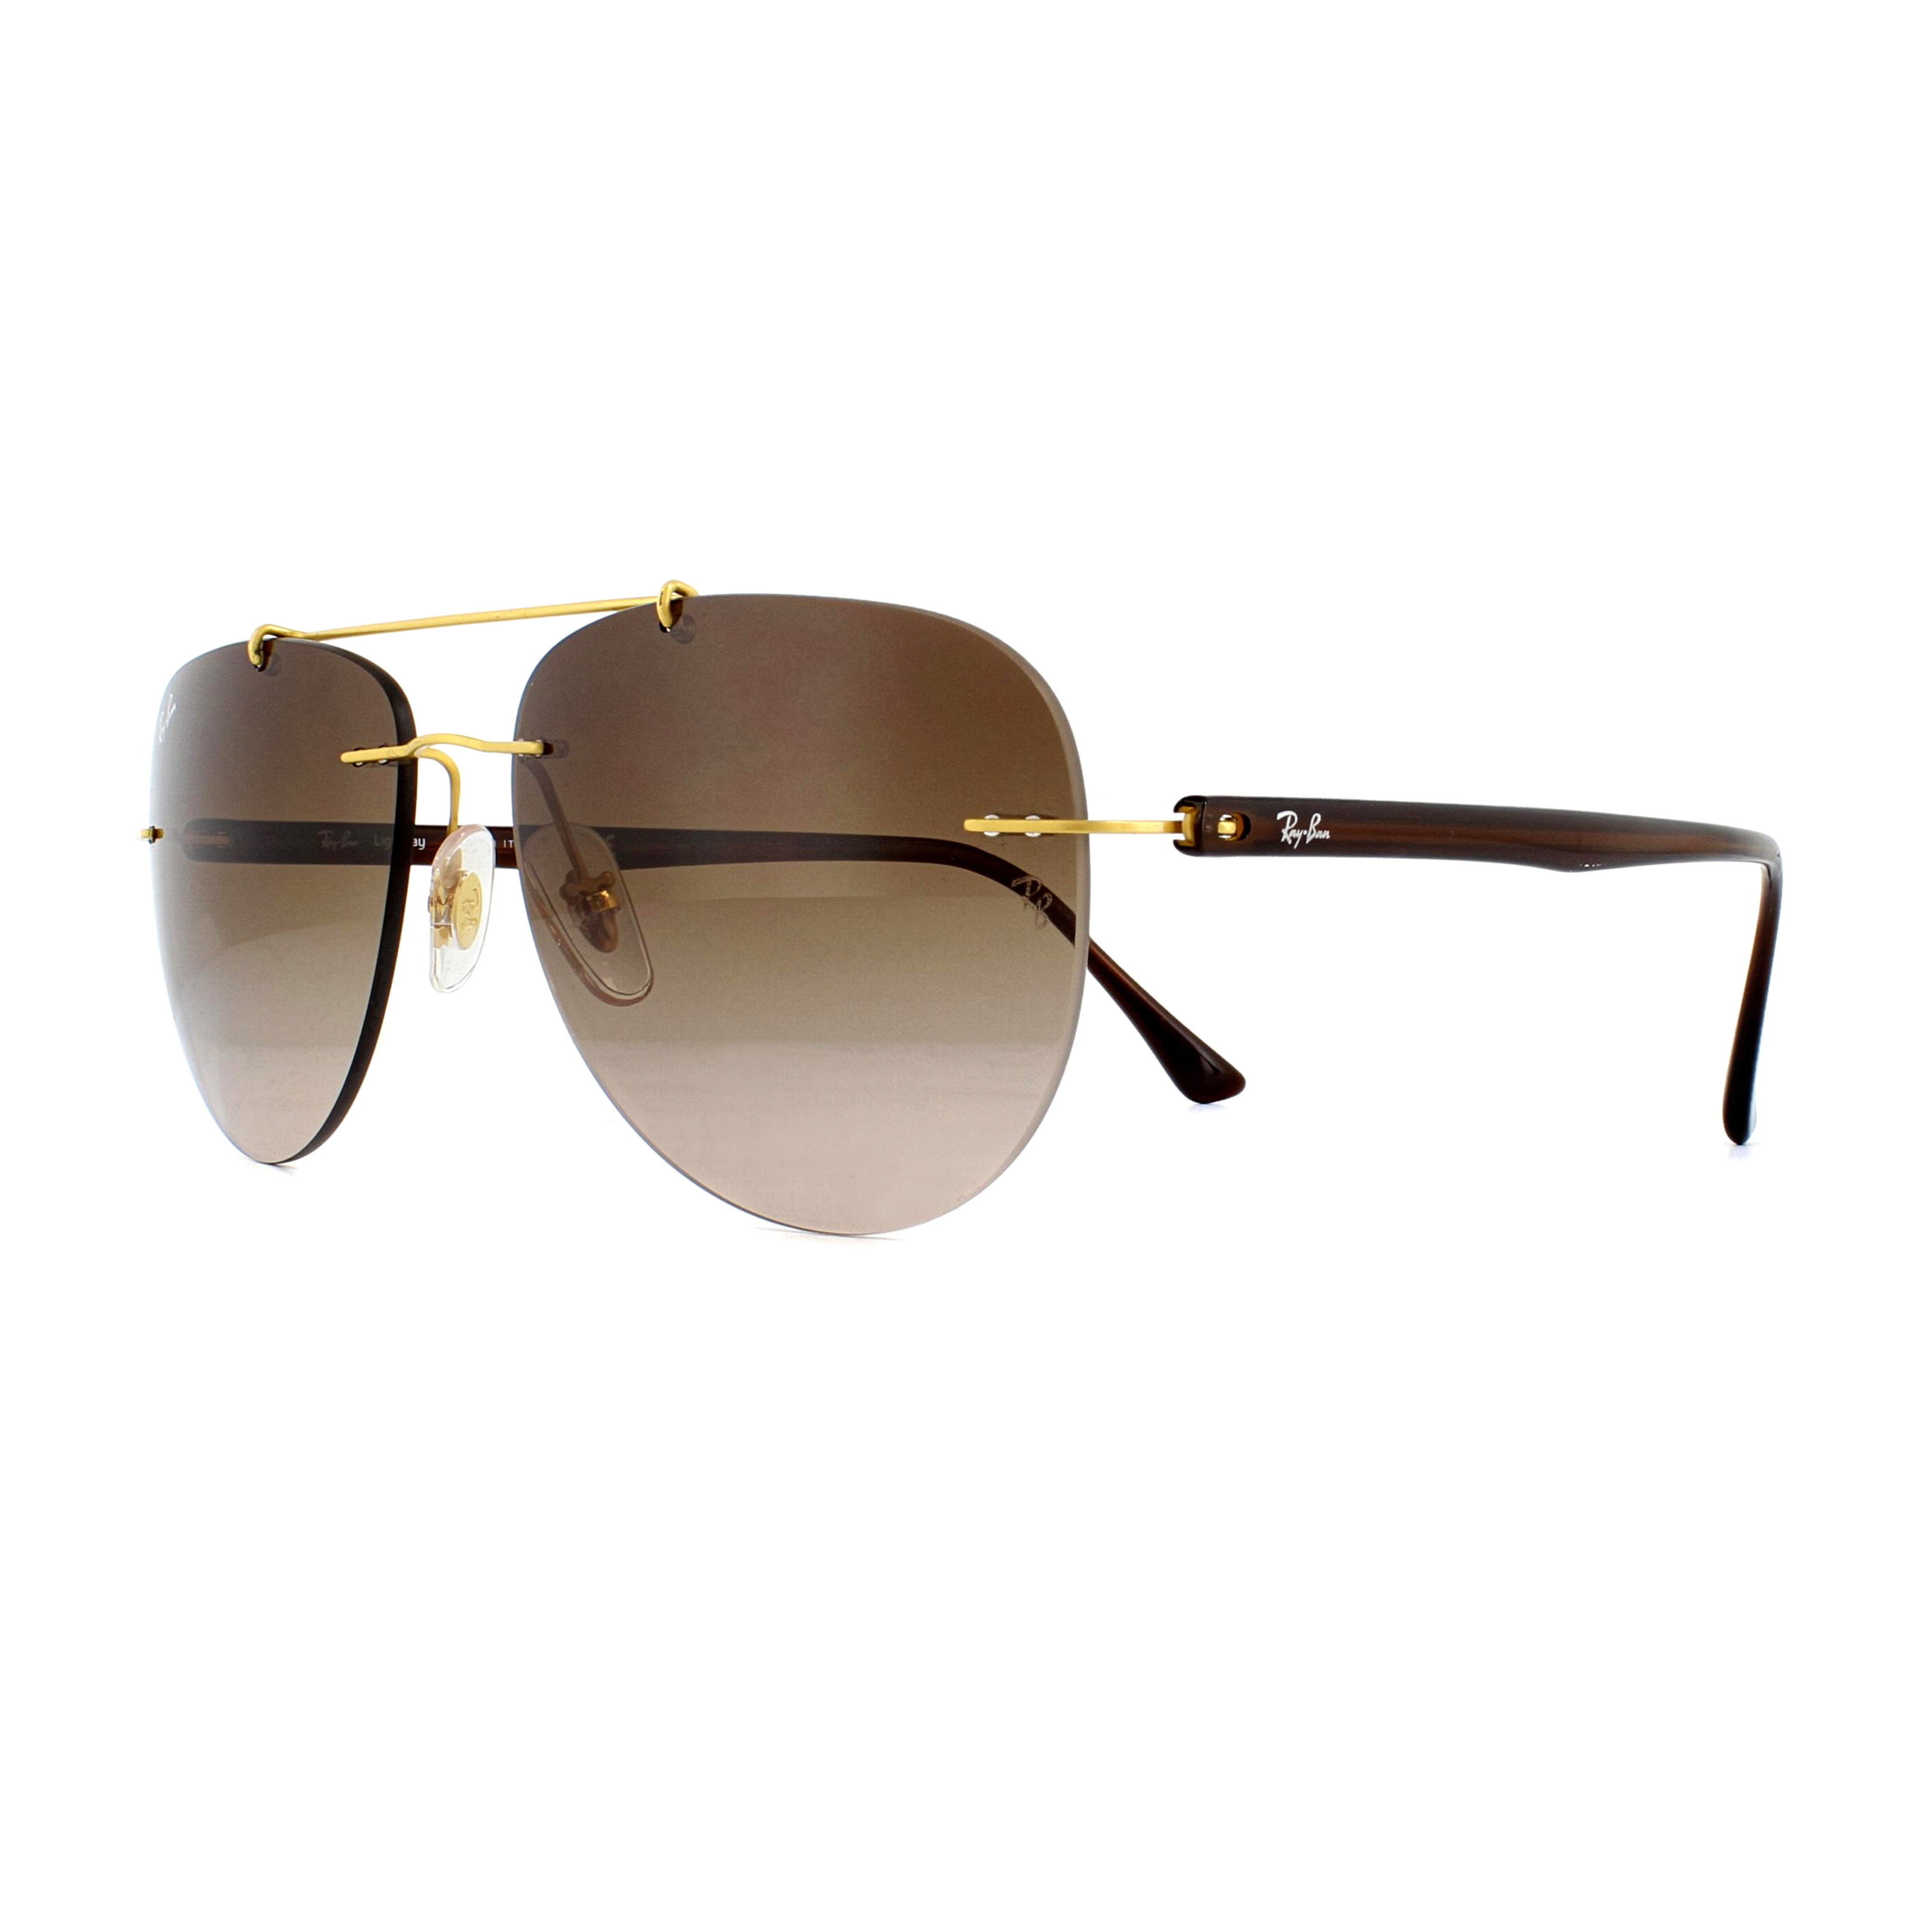 9c4820fc11af Sentinel Ray-Ban Sunglasses 8059 157 13 Gold Brown Brown Gradient